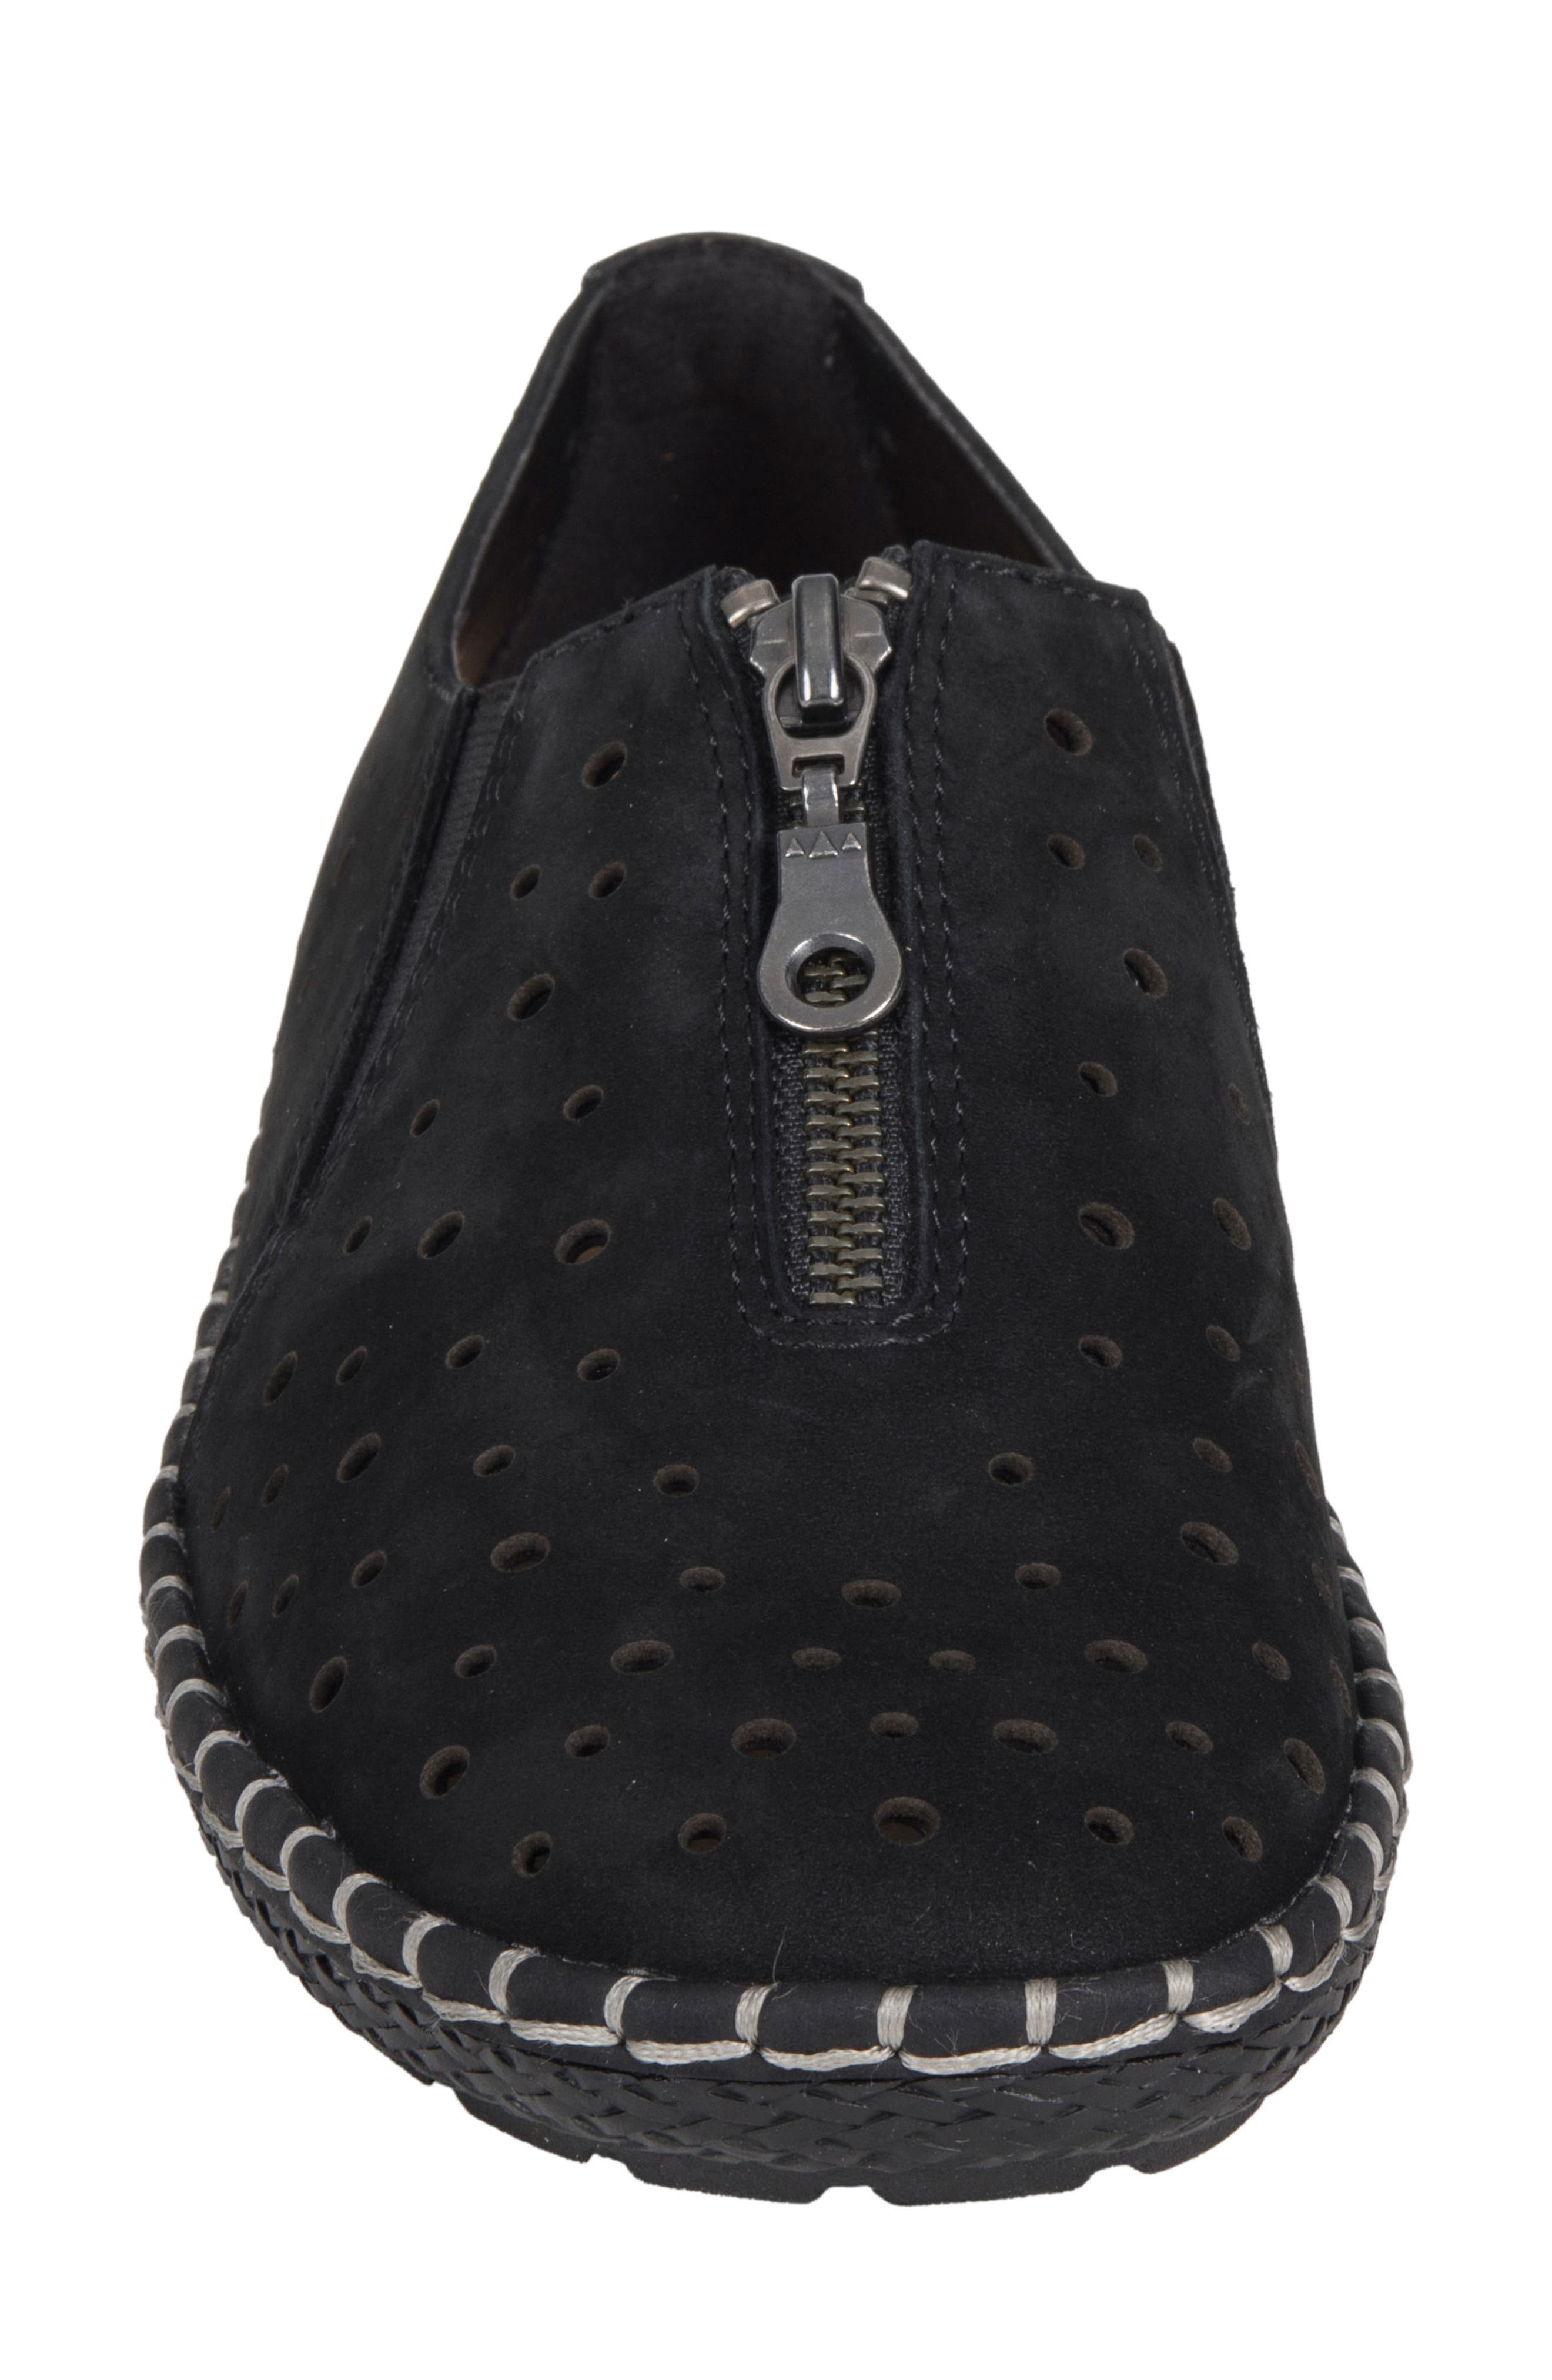 Callisto Perforated Zip Moccasin,                             Alternate thumbnail 4, color,                             001